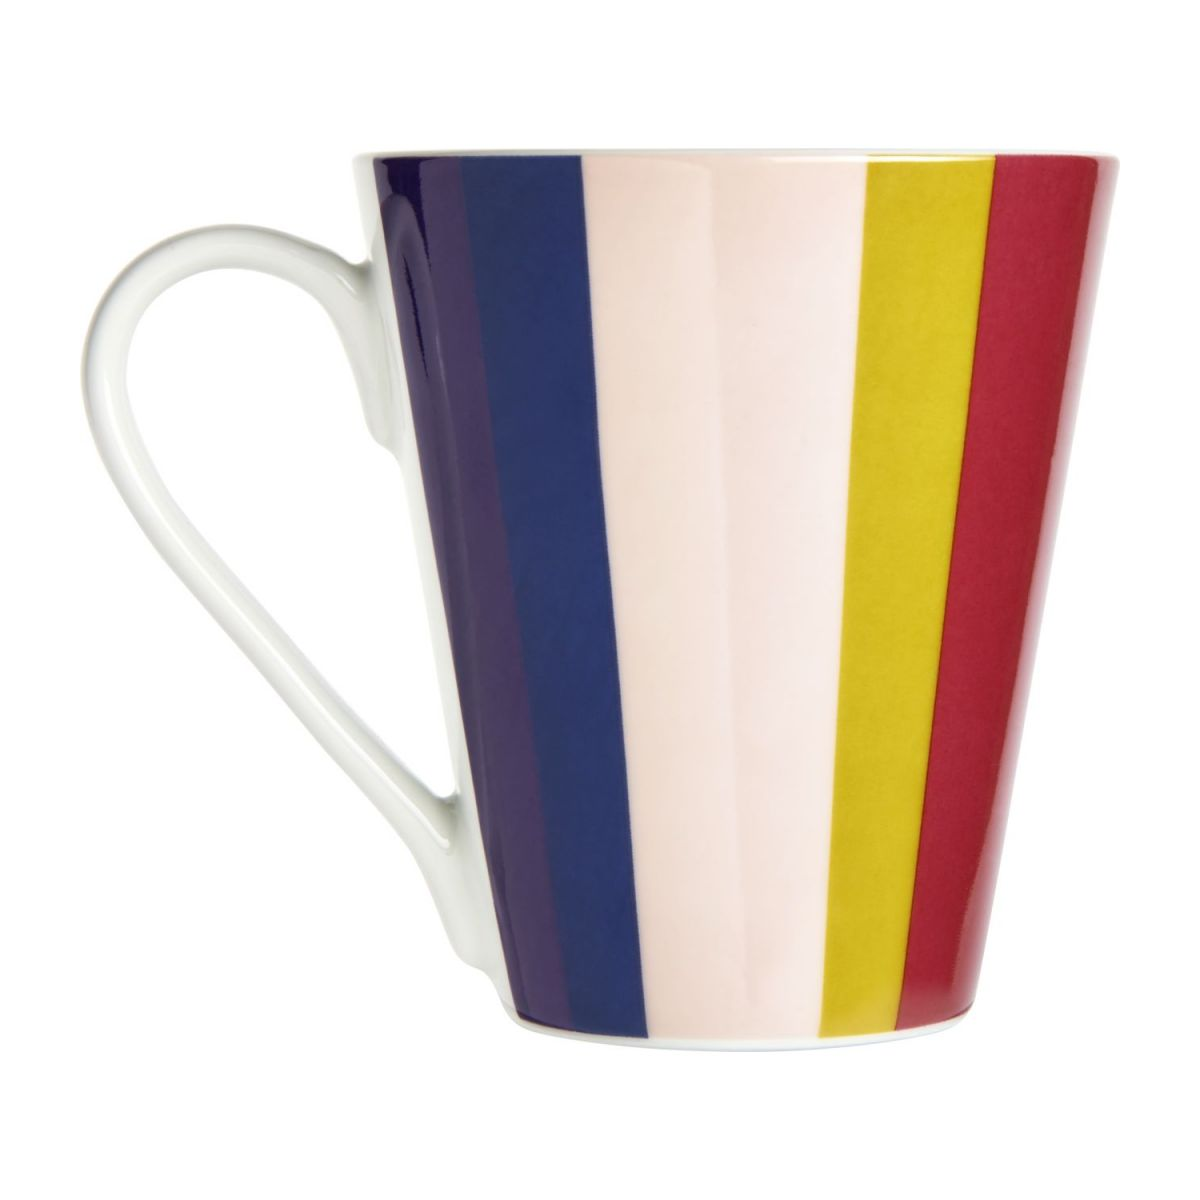 Set of 4 mugs n°6